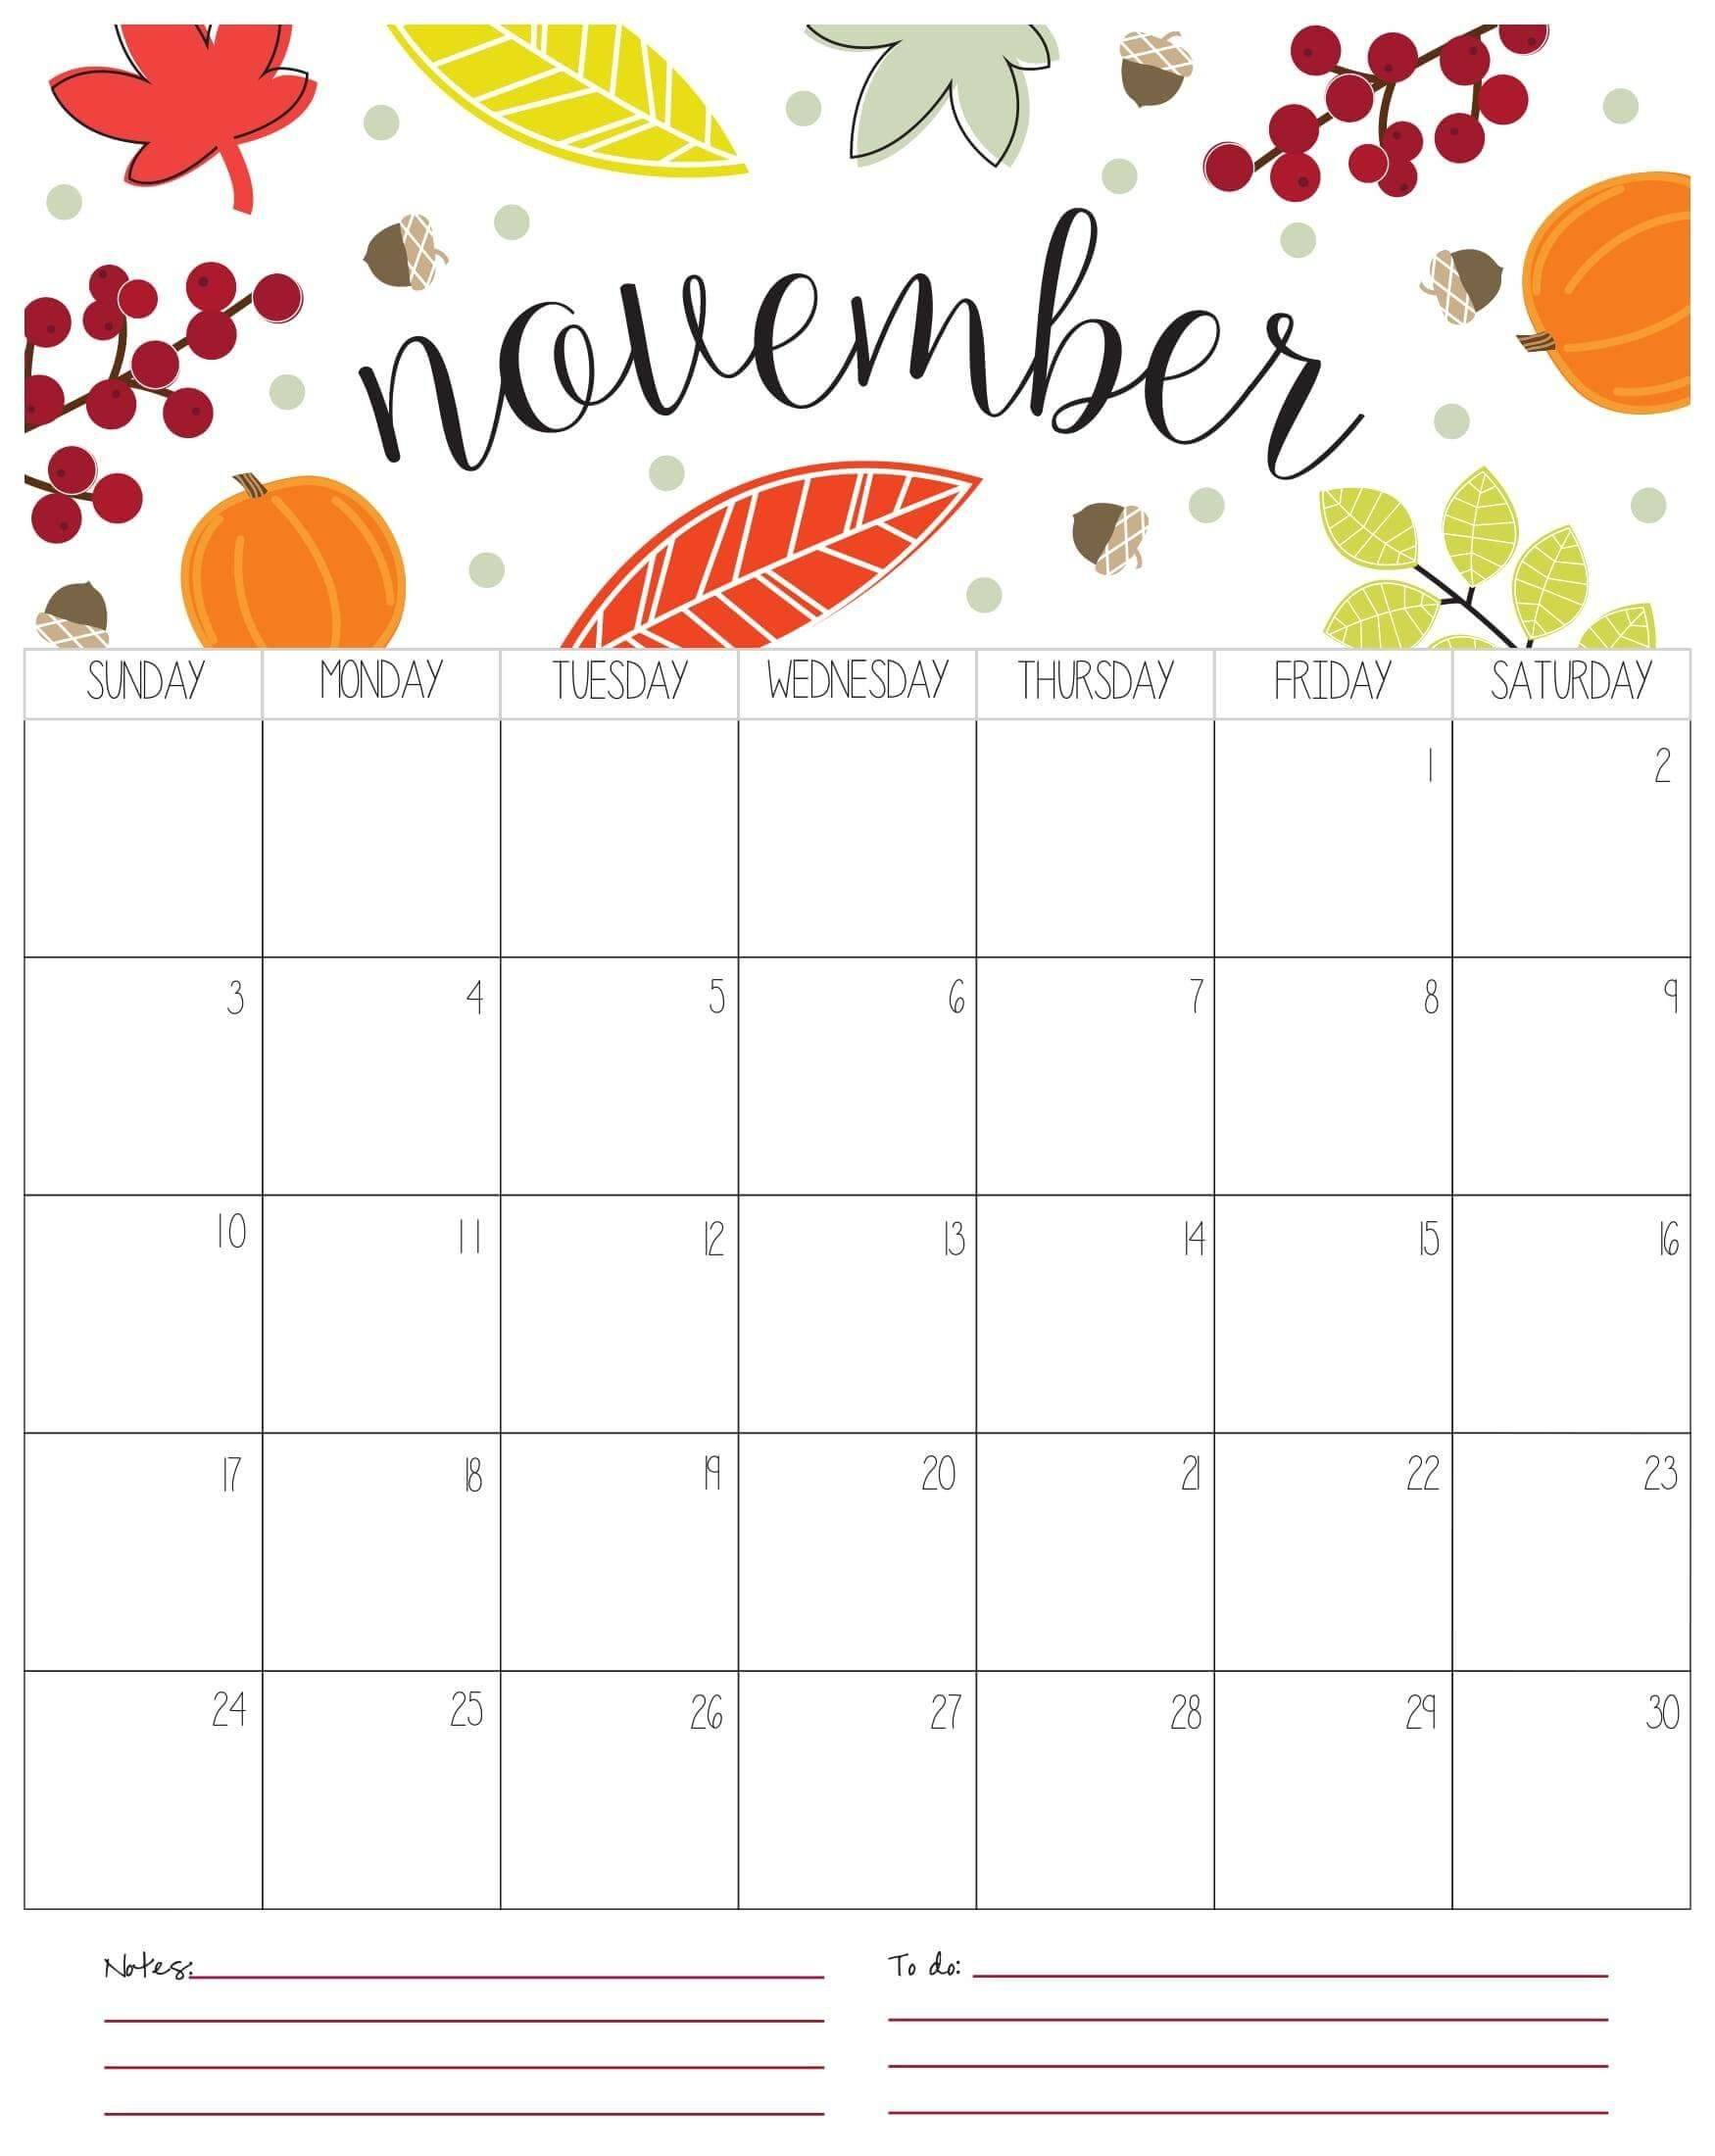 Calendar 2019 November Word | Free Printable Calendar throughout Free Printable Due Date Calendar